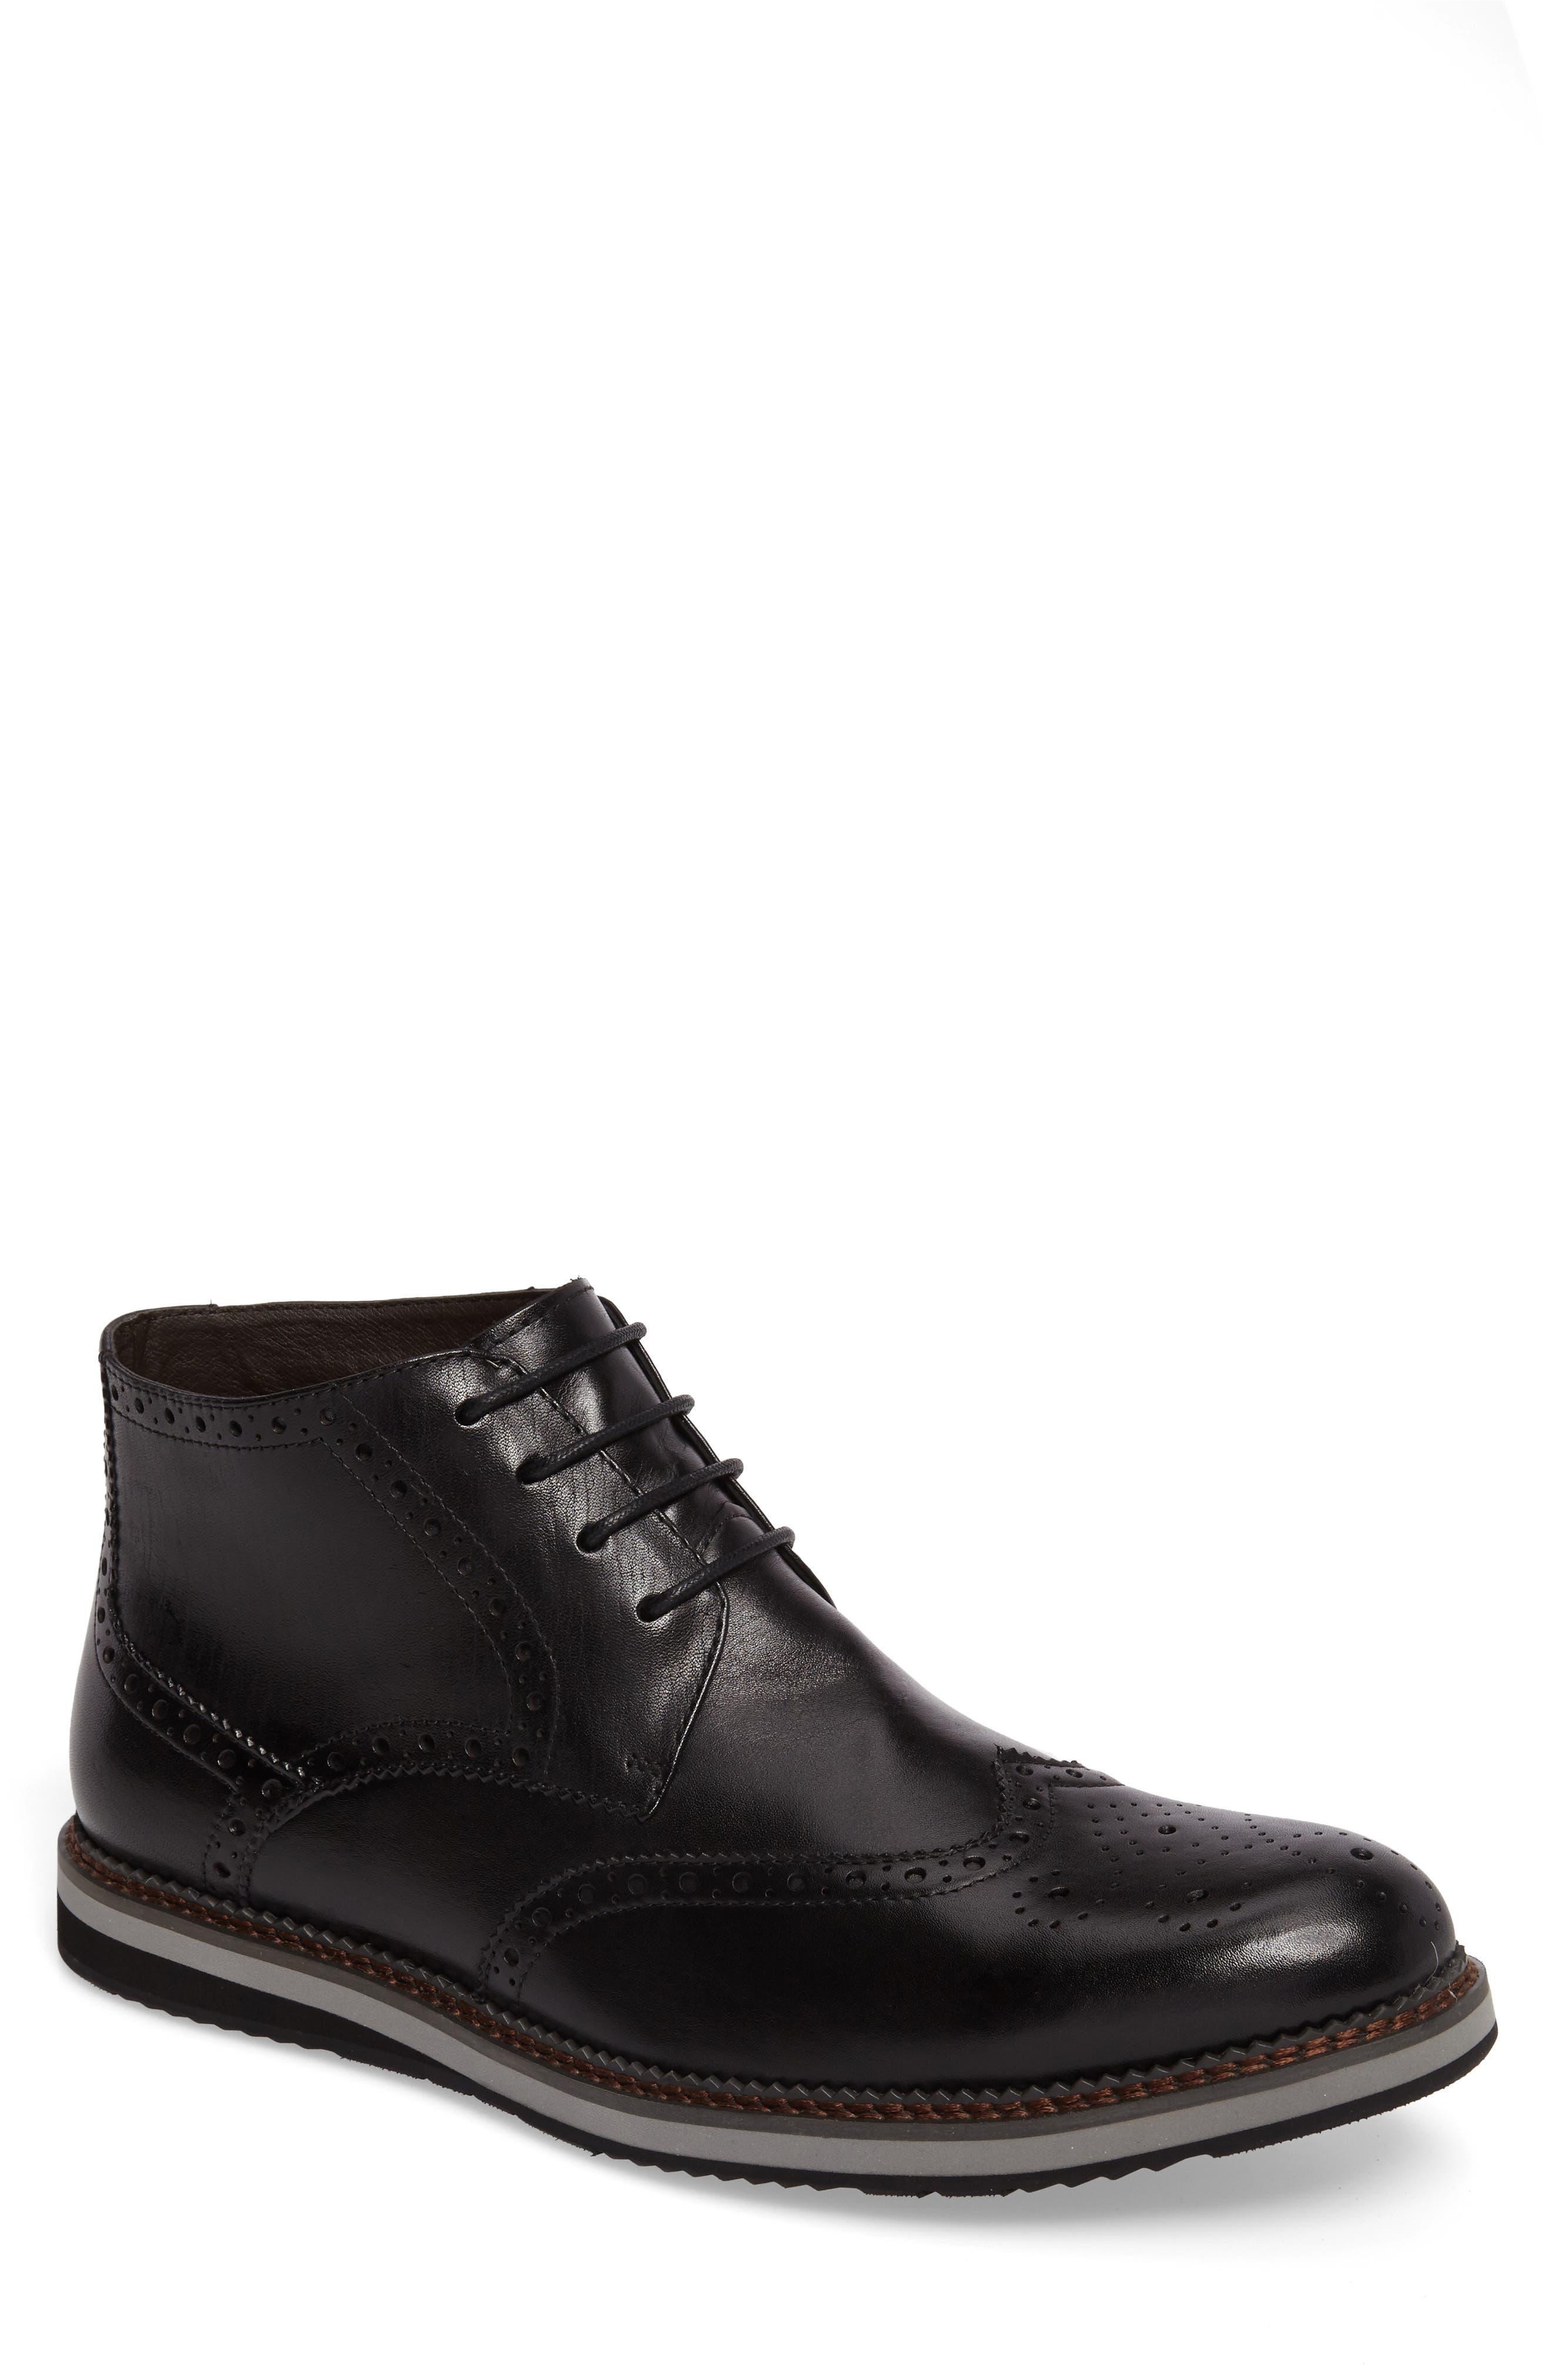 Ascot Wingtip Boot,                         Main,                         color, Black Leather